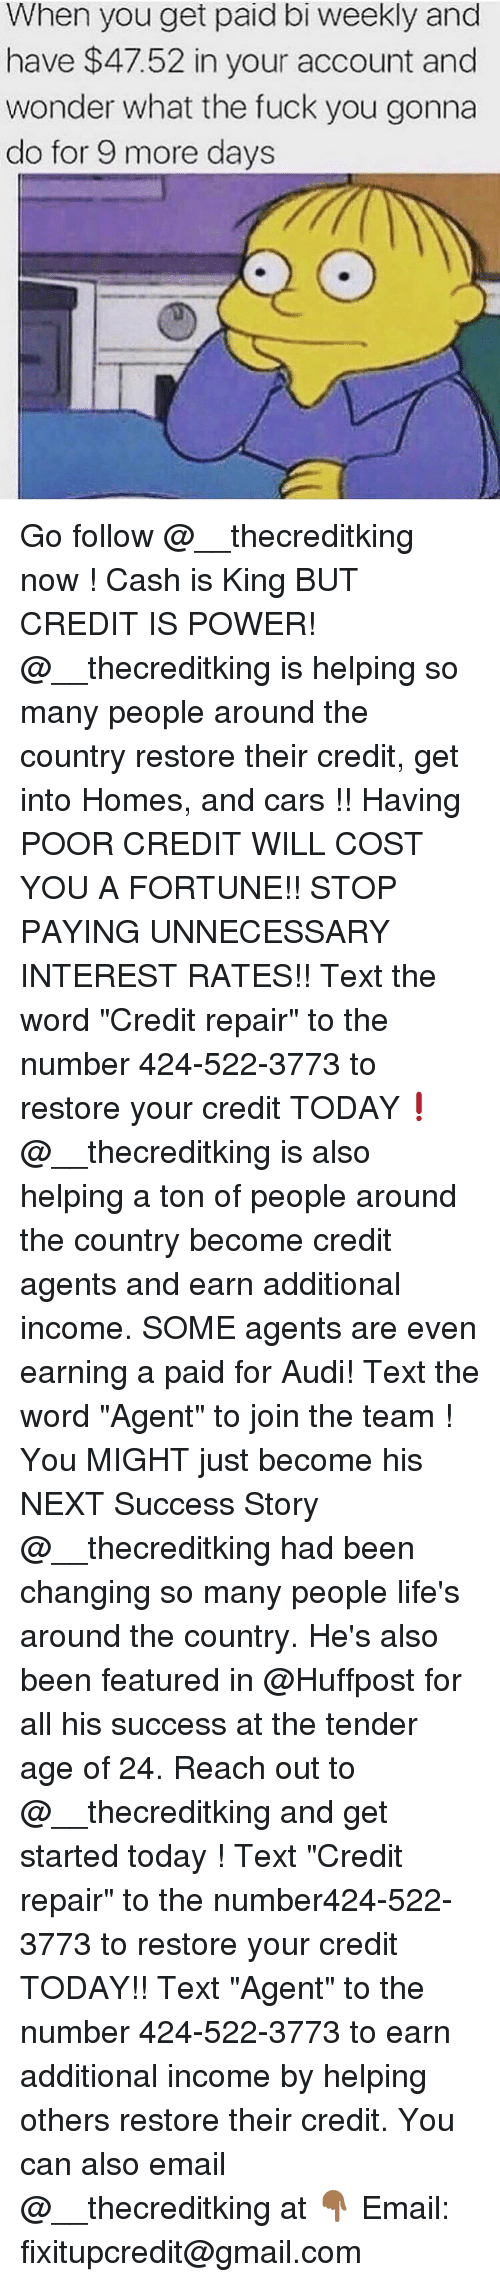 """Cars, Fuck You, and Memes: When you get paid bi weekly and  have $47.52 in your account and  wonder what the fuck you gonna  do for 9 more days Go follow @__thecreditking now ! Cash is King BUT CREDIT IS POWER! @__thecreditking is helping so many people around the country restore their credit, get into Homes, and cars !! Having POOR CREDIT WILL COST YOU A FORTUNE!! STOP PAYING UNNECESSARY INTEREST RATES!! Text the word """"Credit repair"""" to the number 424-522-3773 to restore your credit TODAY❗️ @__thecreditking is also helping a ton of people around the country become credit agents and earn additional income. SOME agents are even earning a paid for Audi! Text the word """"Agent"""" to join the team ! You MIGHT just become his NEXT Success Story @__thecreditking had been changing so many people life's around the country. He's also been featured in @Huffpost for all his success at the tender age of 24. Reach out to @__thecreditking and get started today ! Text """"Credit repair"""" to the number424-522-3773 to restore your credit TODAY!! Text """"Agent"""" to the number 424-522-3773 to earn additional income by helping others restore their credit. You can also email @__thecreditking at 👇🏾 Email: fixitupcredit@gmail.com"""